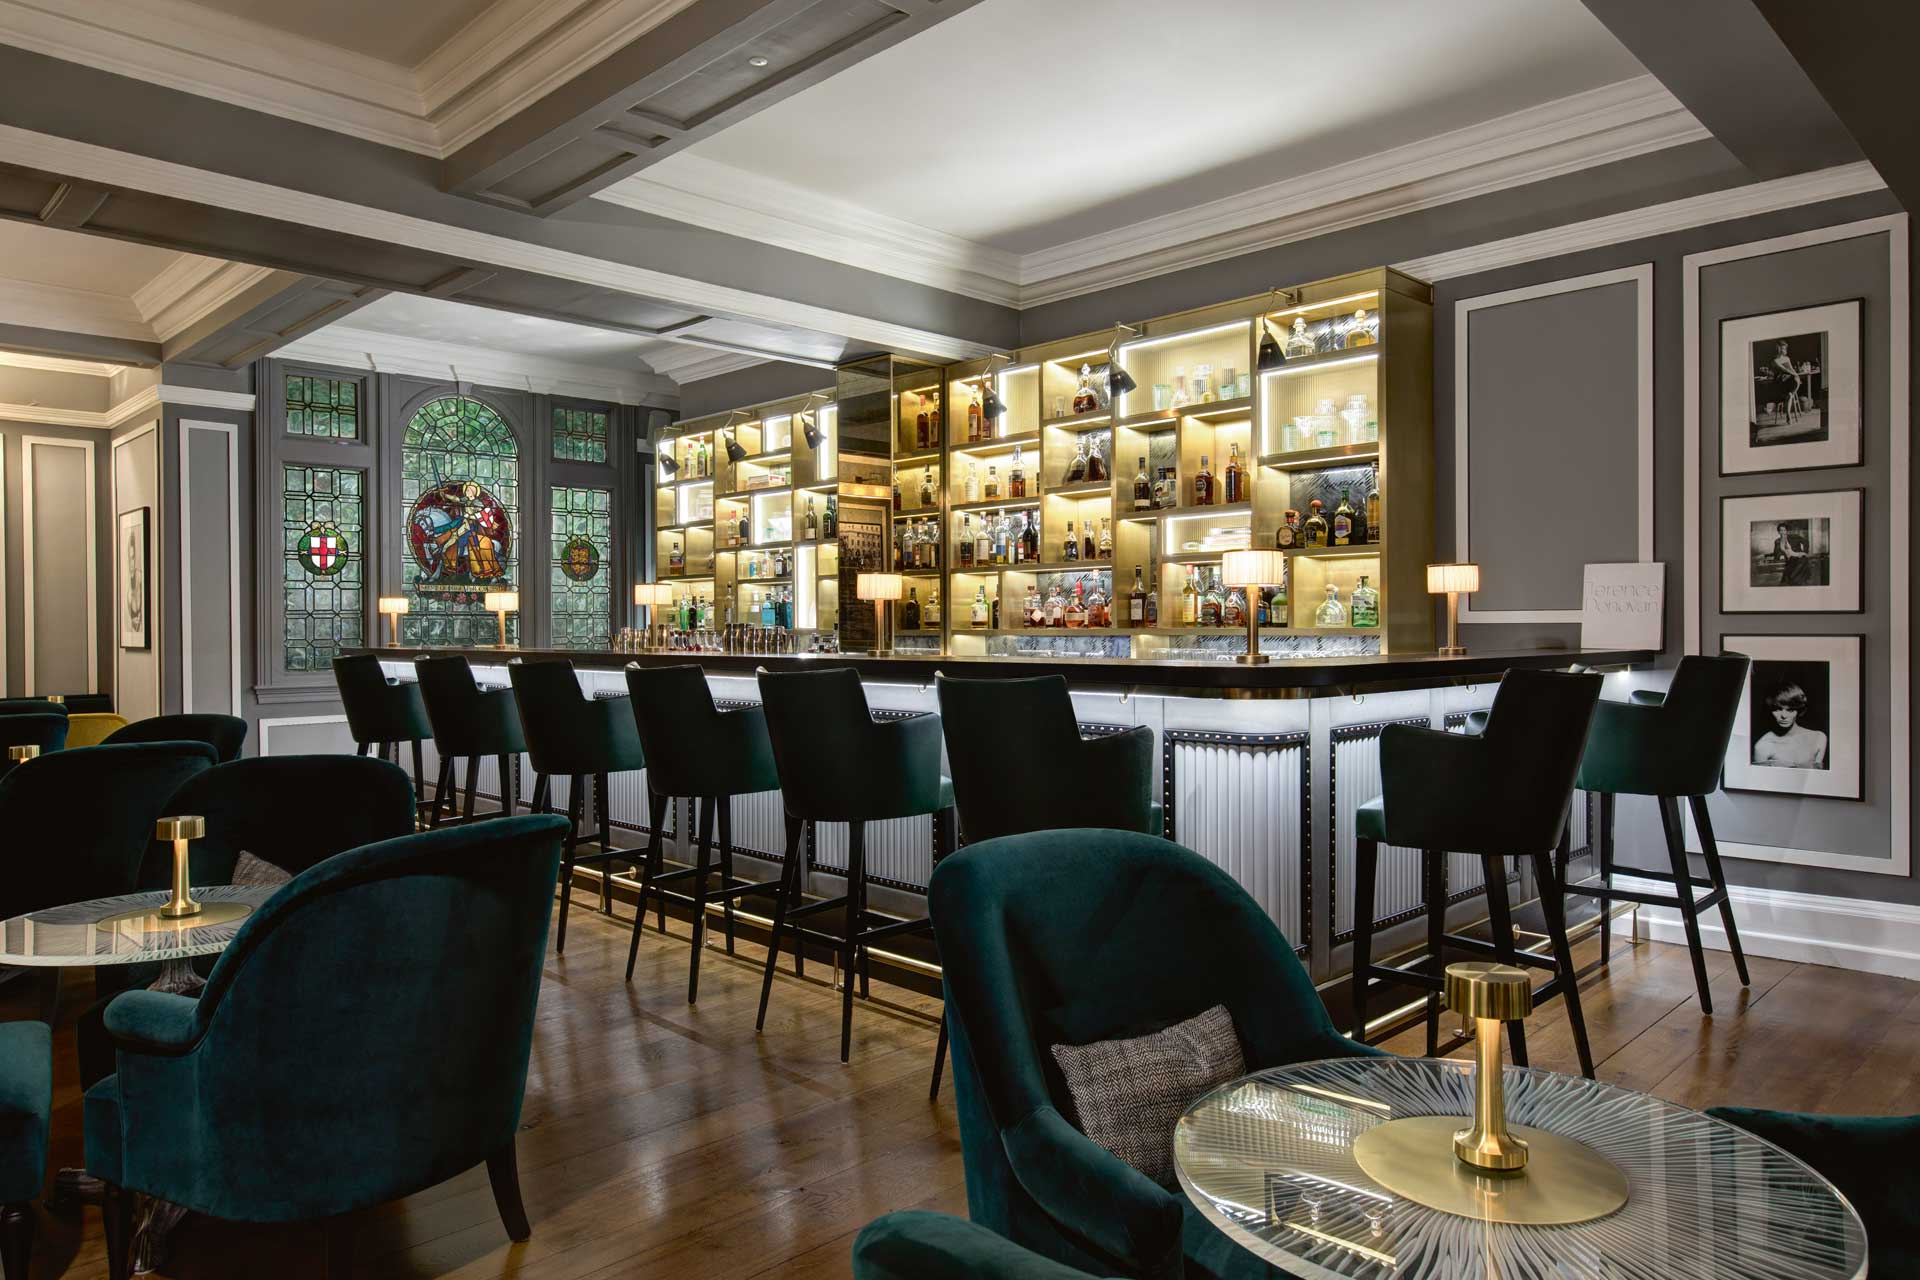 Interiors of Donovan Bar at Brown's Hotel, part of Rocco Forte Hotels